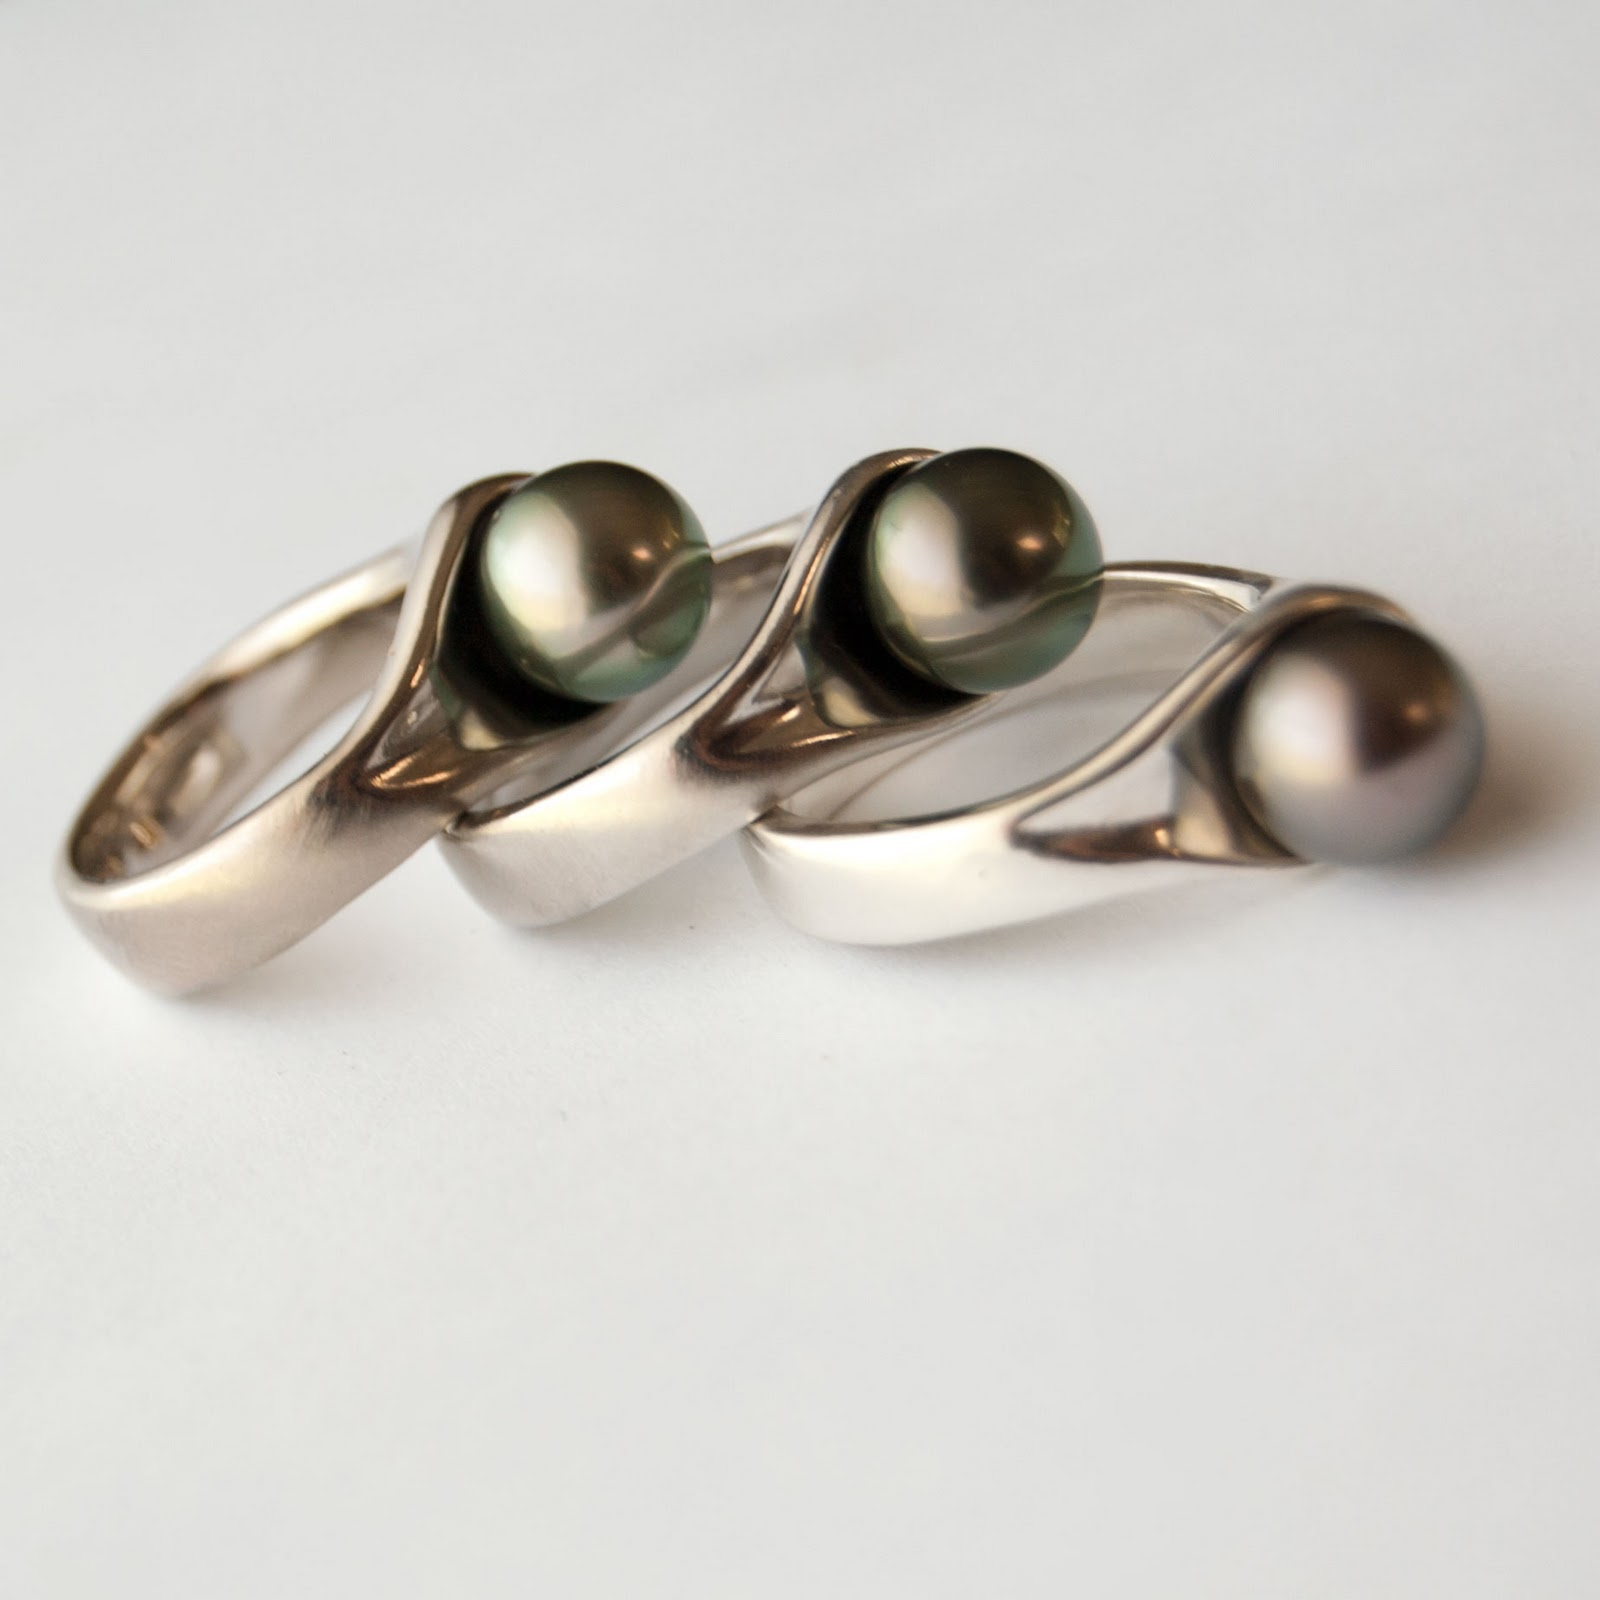 Retro, Vintage 1930s-1980s 925 Sterling Silver Vintage Real Pearl Ring Size 5 To Ensure A Like-New Appearance Indefinably